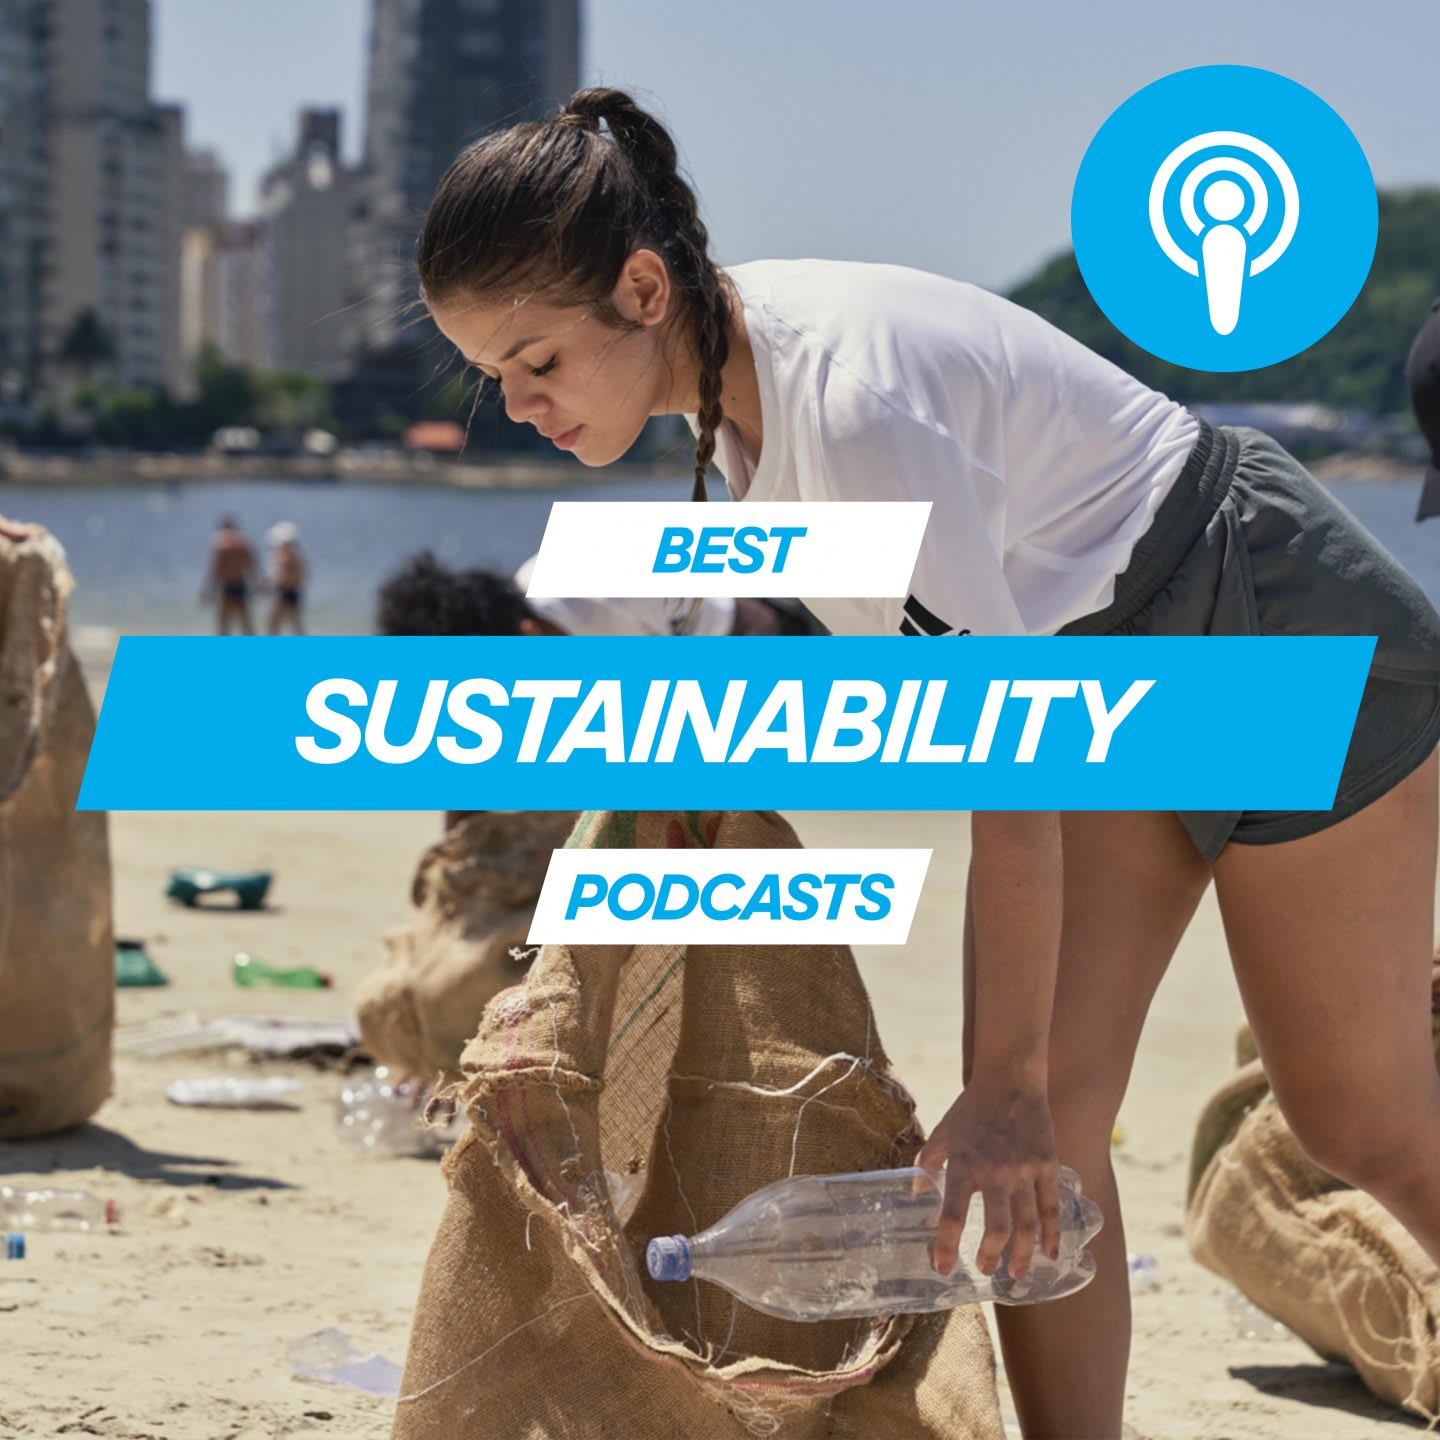 GamePlan A recommendations for best podcasts on sustainability, environment, listening, growth mindset, podcasts, corporate athlete